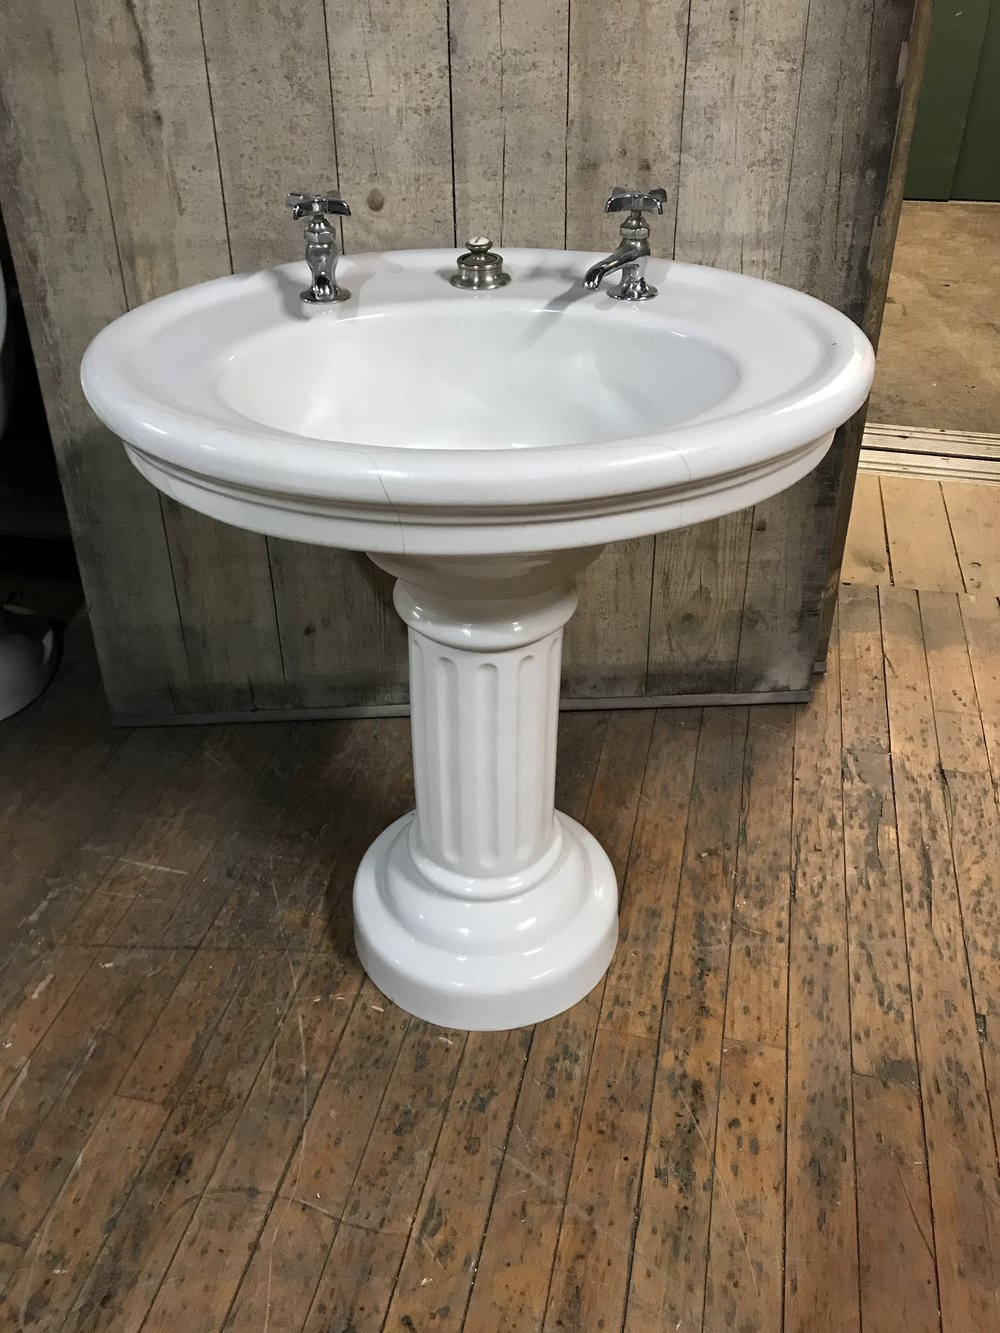 Antique vitreous China pedestal sink